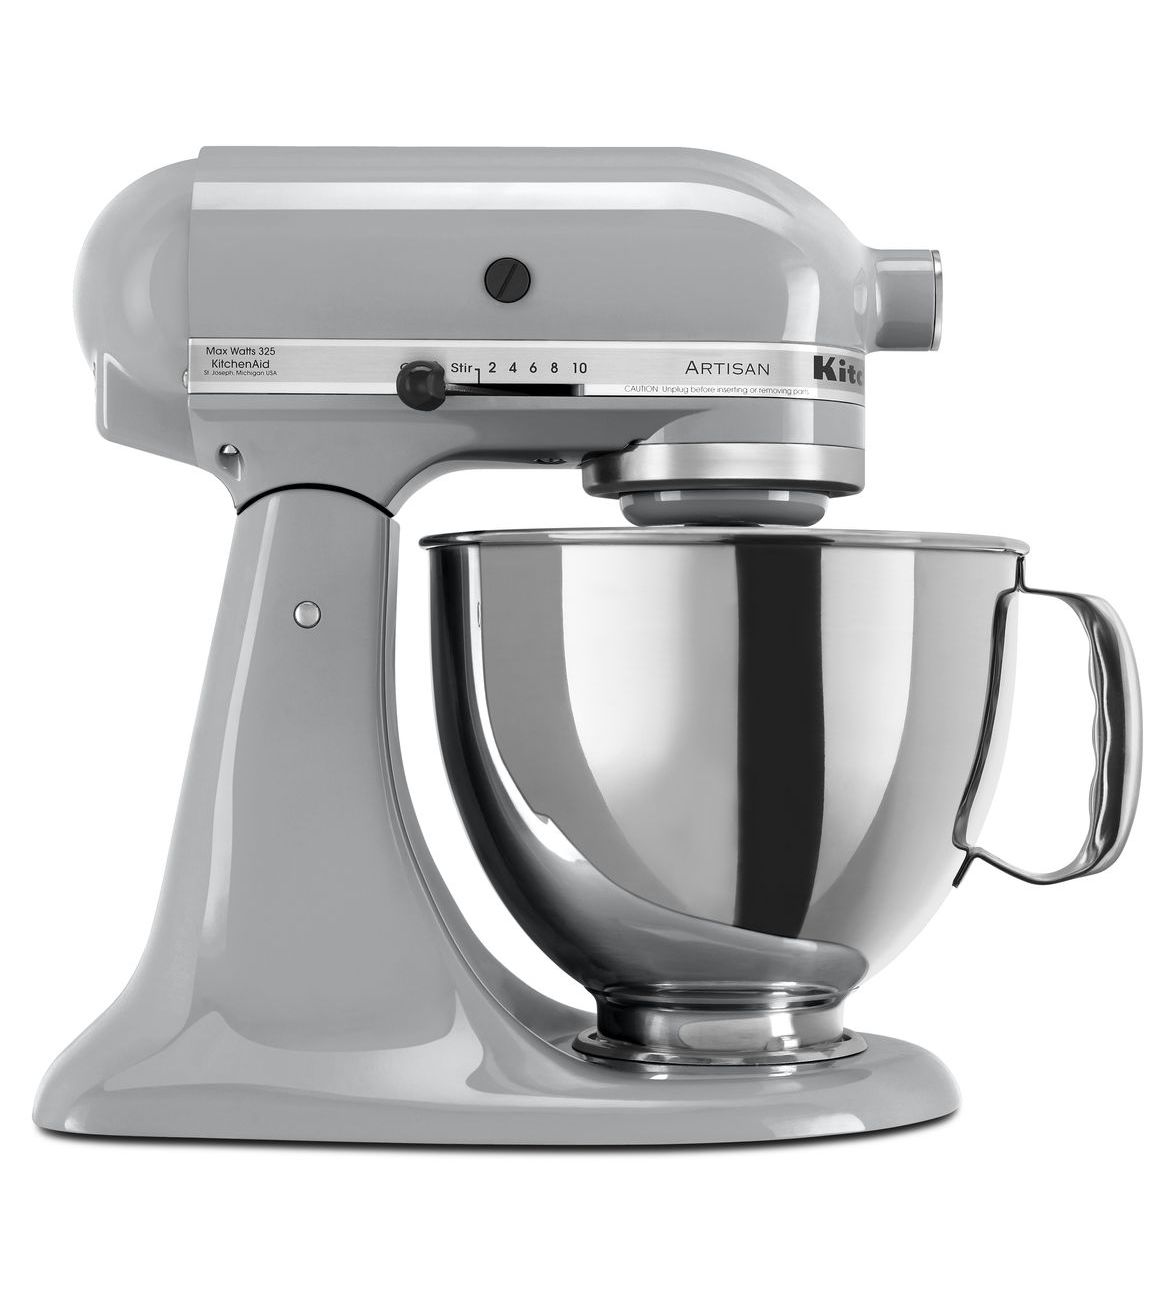 KitchenAid® Refurbished Artisan® Series 5 Quart Tilt-Head Stand Mixer, RRK150 Metallic Chrome